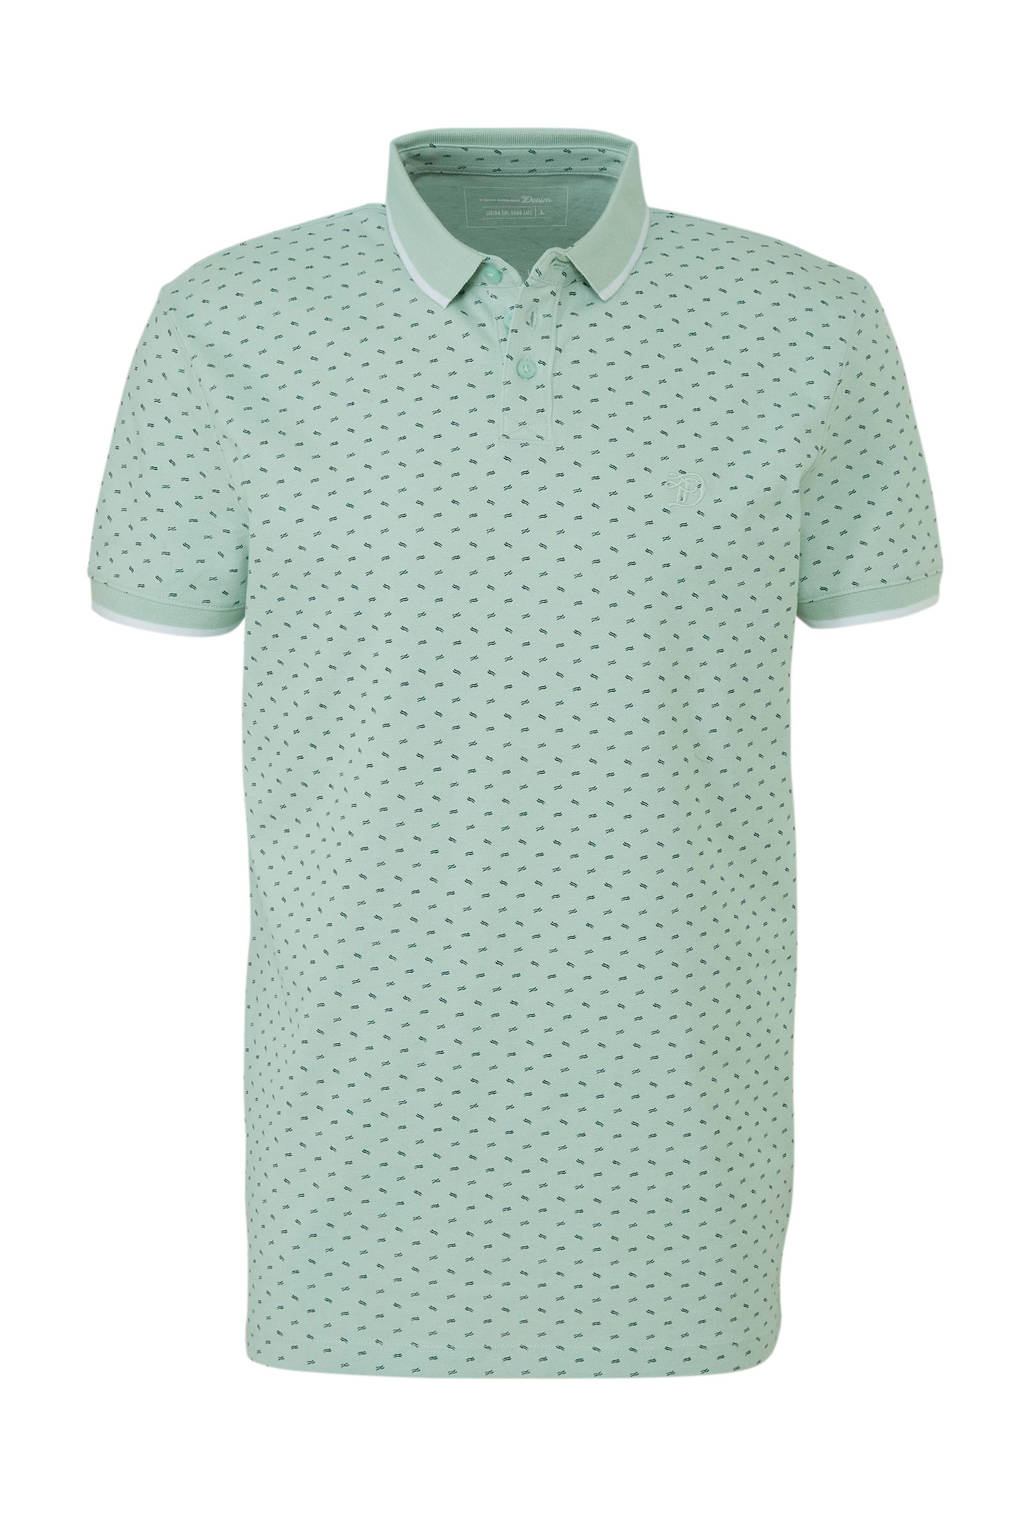 Tom Tailor Denim polo met all over print, Lichtgroen